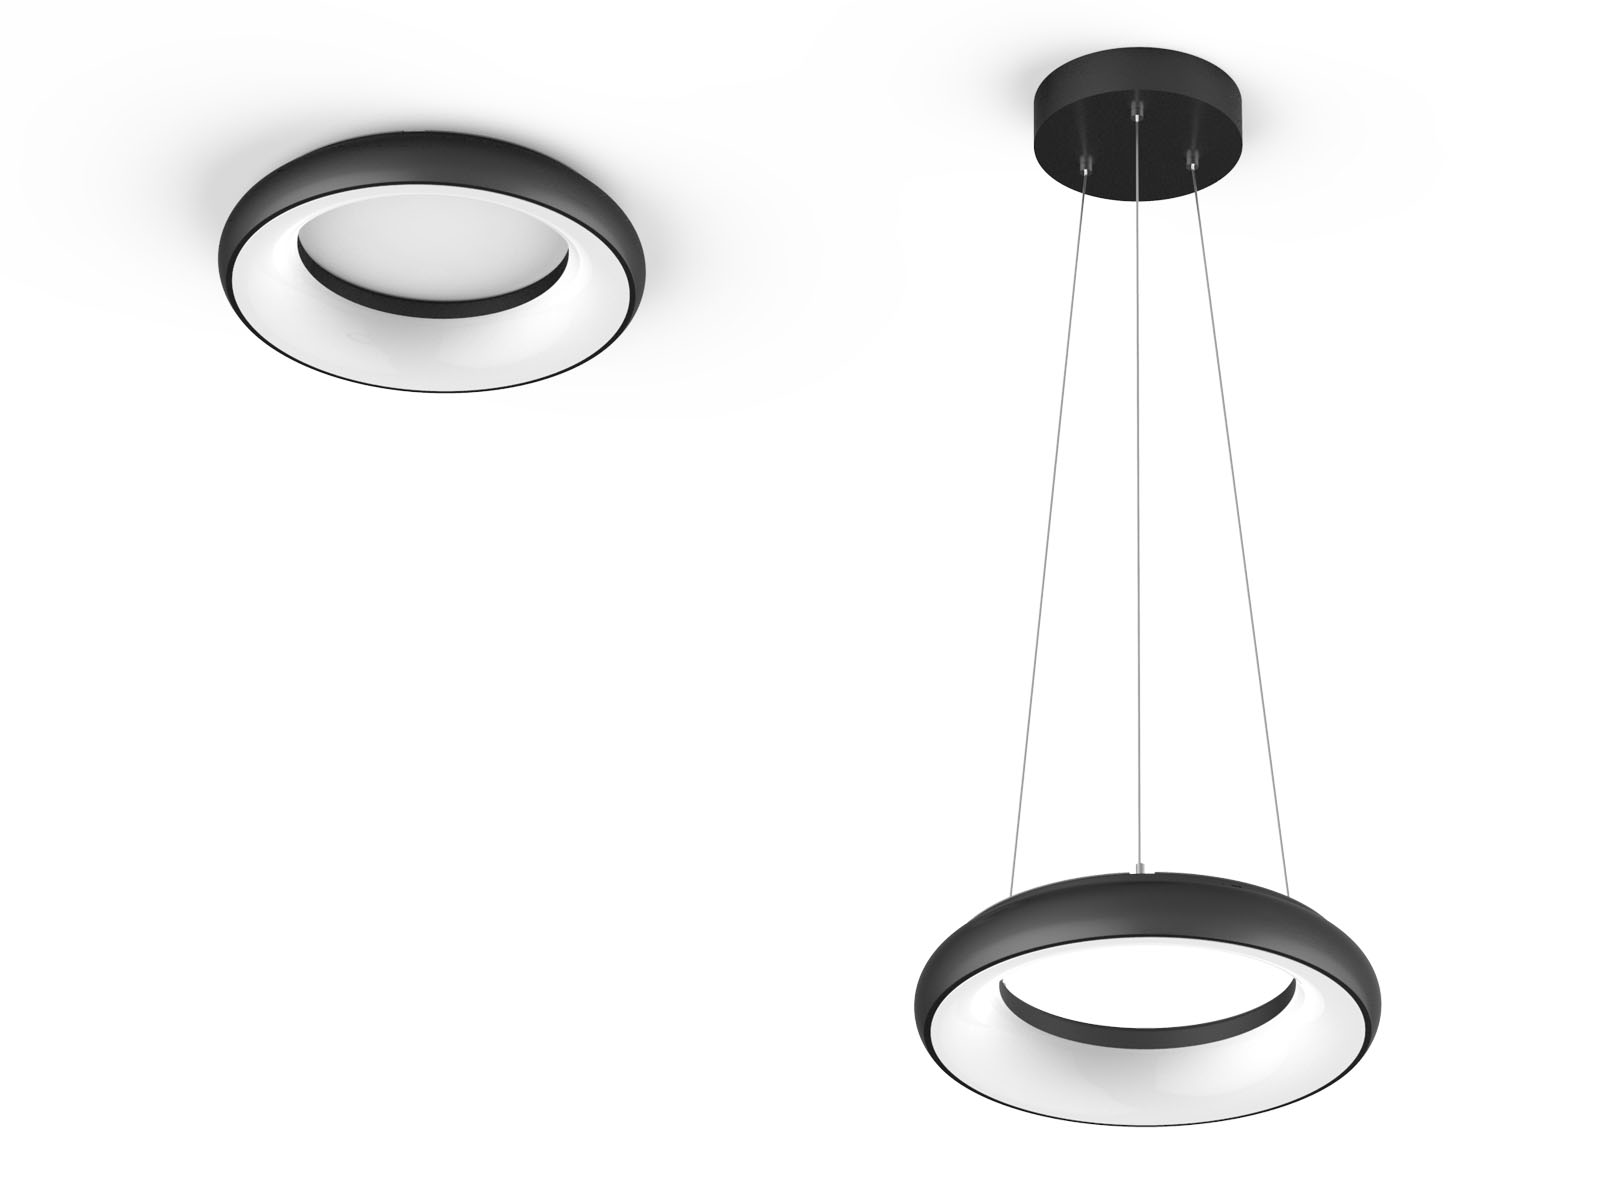 AL24 2 Surface Mounted LED Ceiling Light